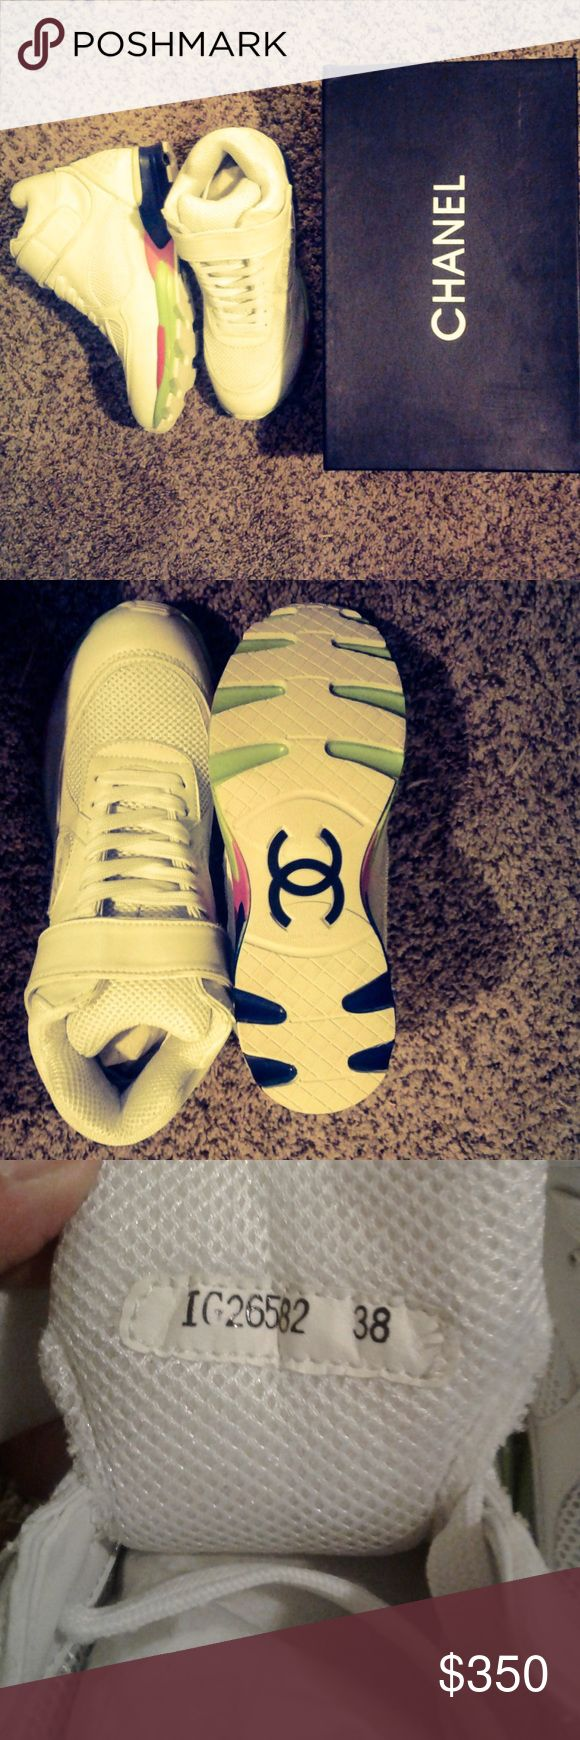 Chanel Tennis Shoes. Authletic. Brand new. Size: 8. I have only 2 pair white sneakers. CHANEL Shoes Sneakers